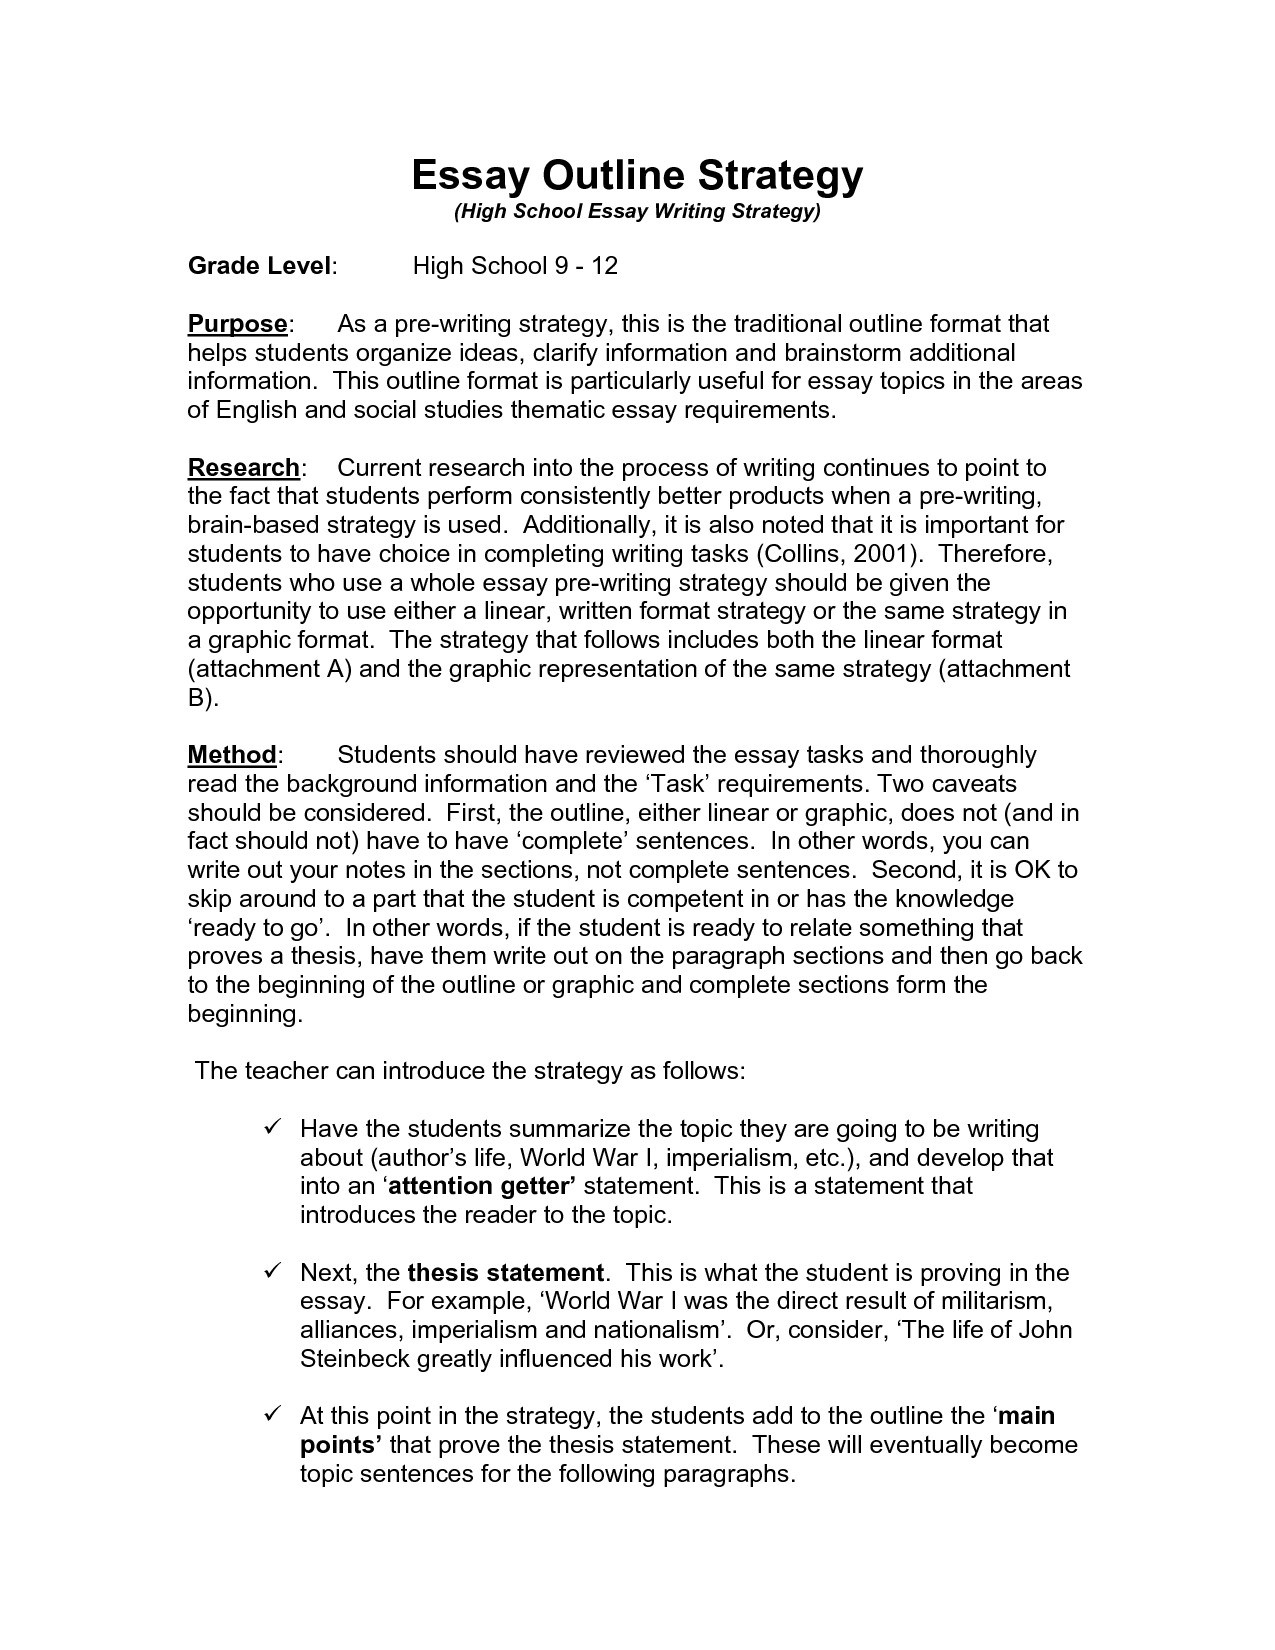 Essay Writing Format In English | World Of Example inside Essay Writing Format In English 23497